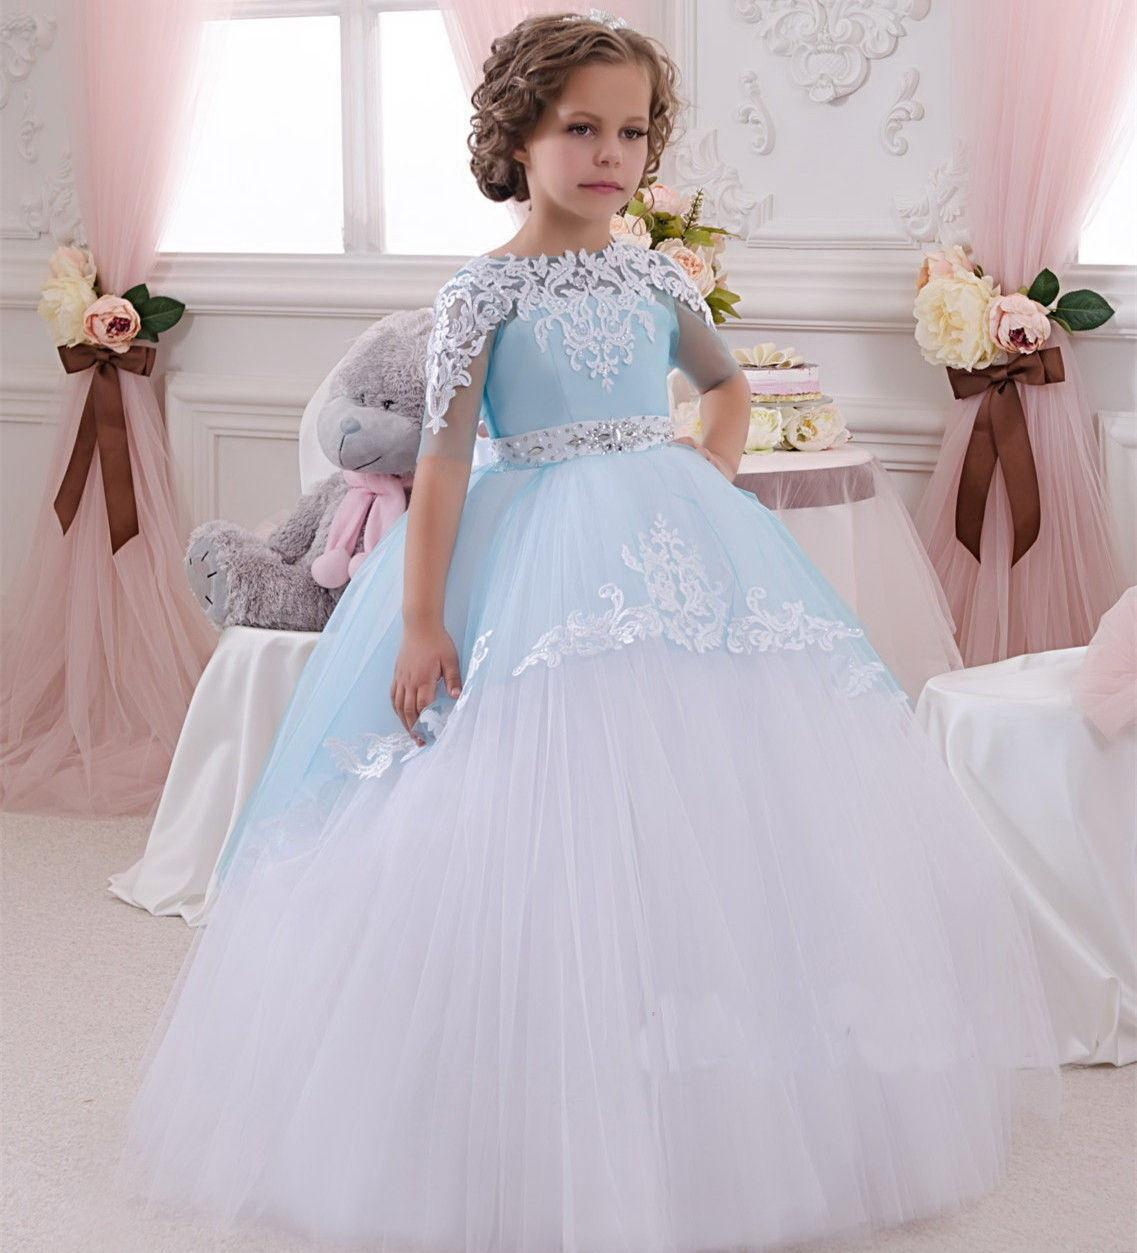 f125e87f496a8 Sky Blue Formal Tulle Cute Applique Short Sleeve Lace Flower Girl Dresses  Ball Gown Little Kids Party Birthday Dress Princess Dress For Girls  Princess ...